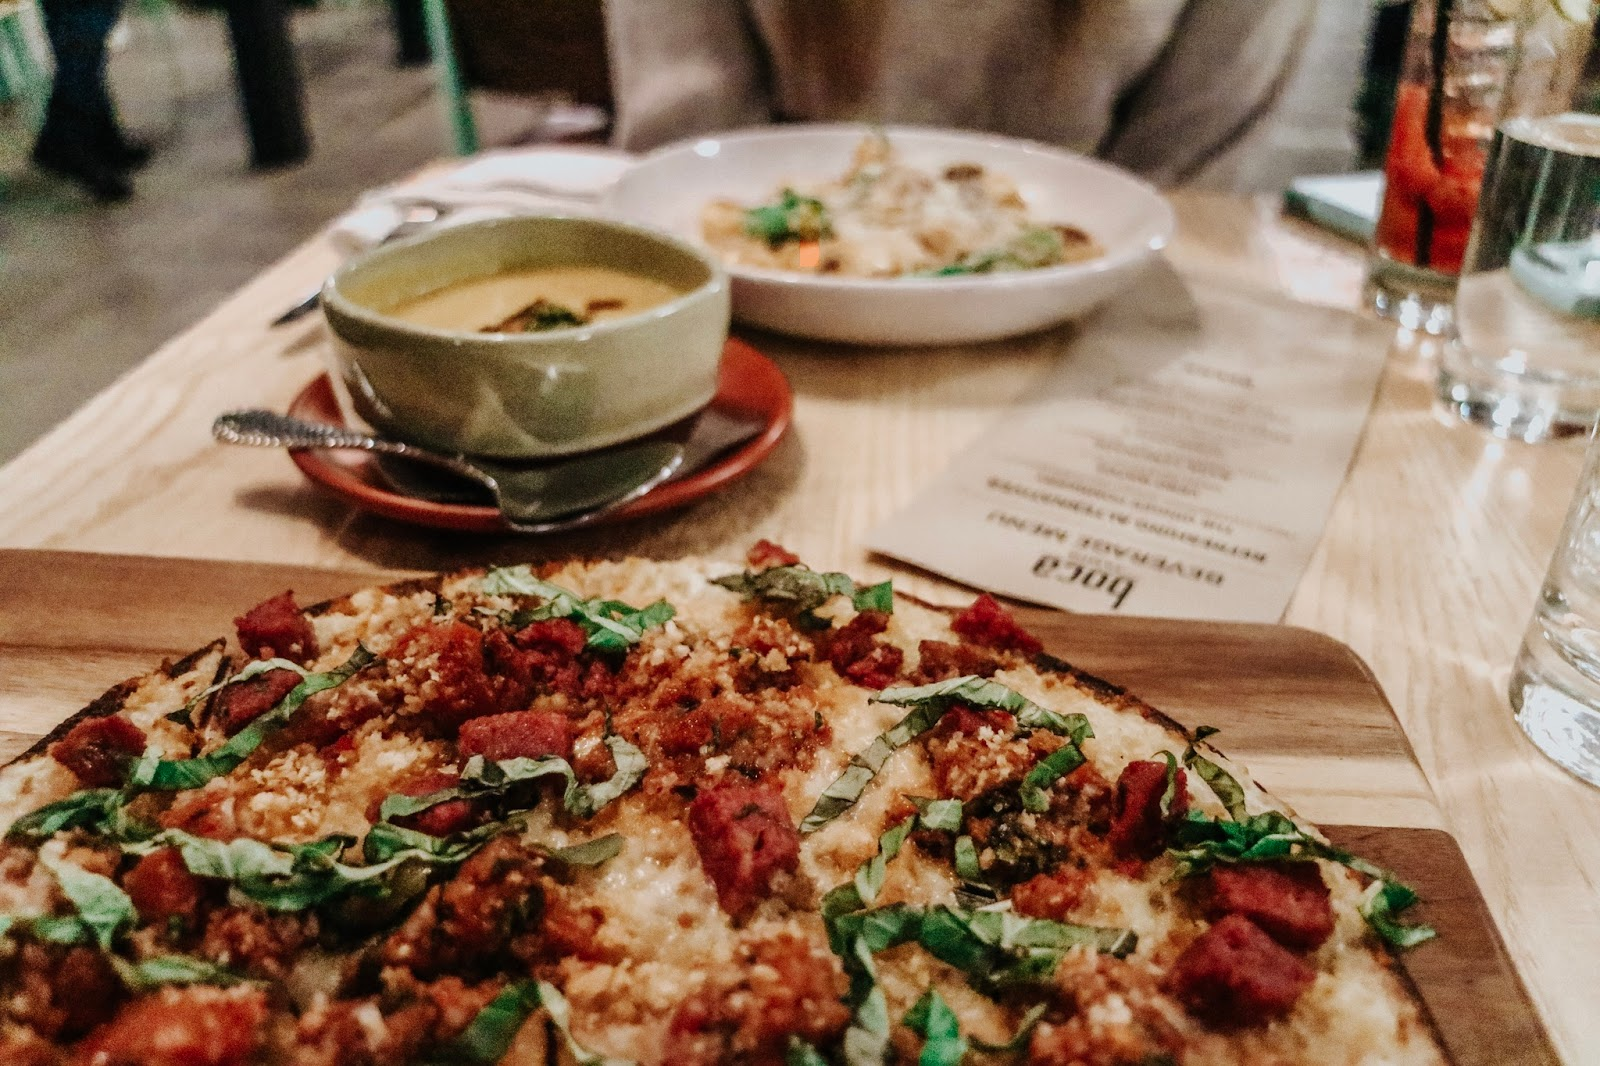 Flatbread pizza and autumn butternut squash soup from boca in Tampa Florida